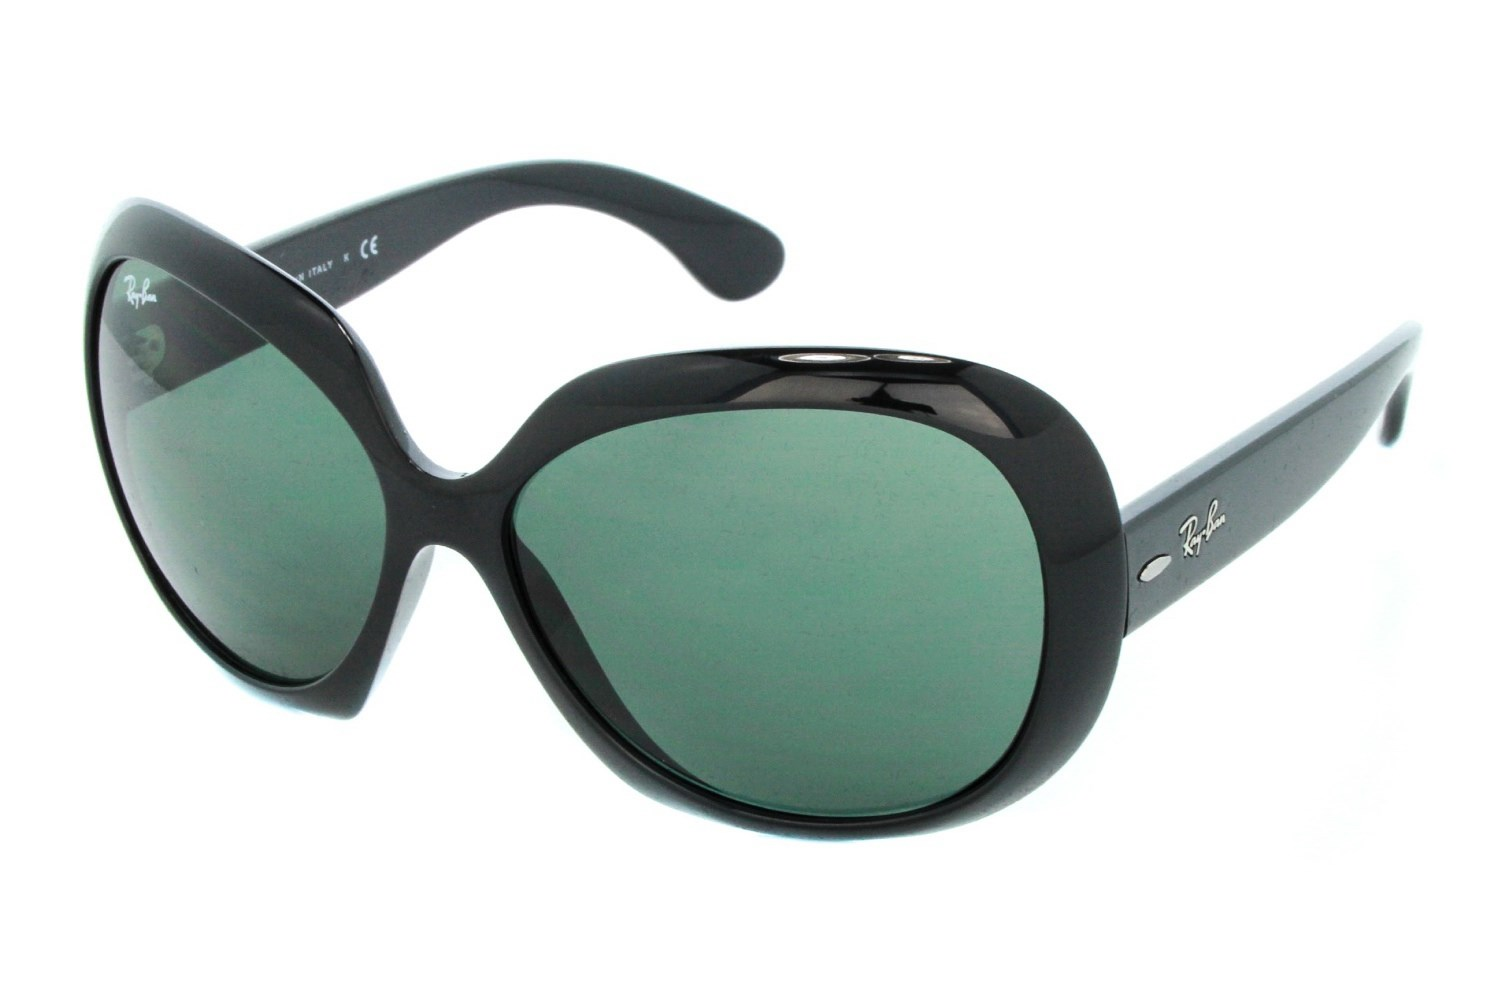 cheap authentic ray ban sunglasses  sunglasses online